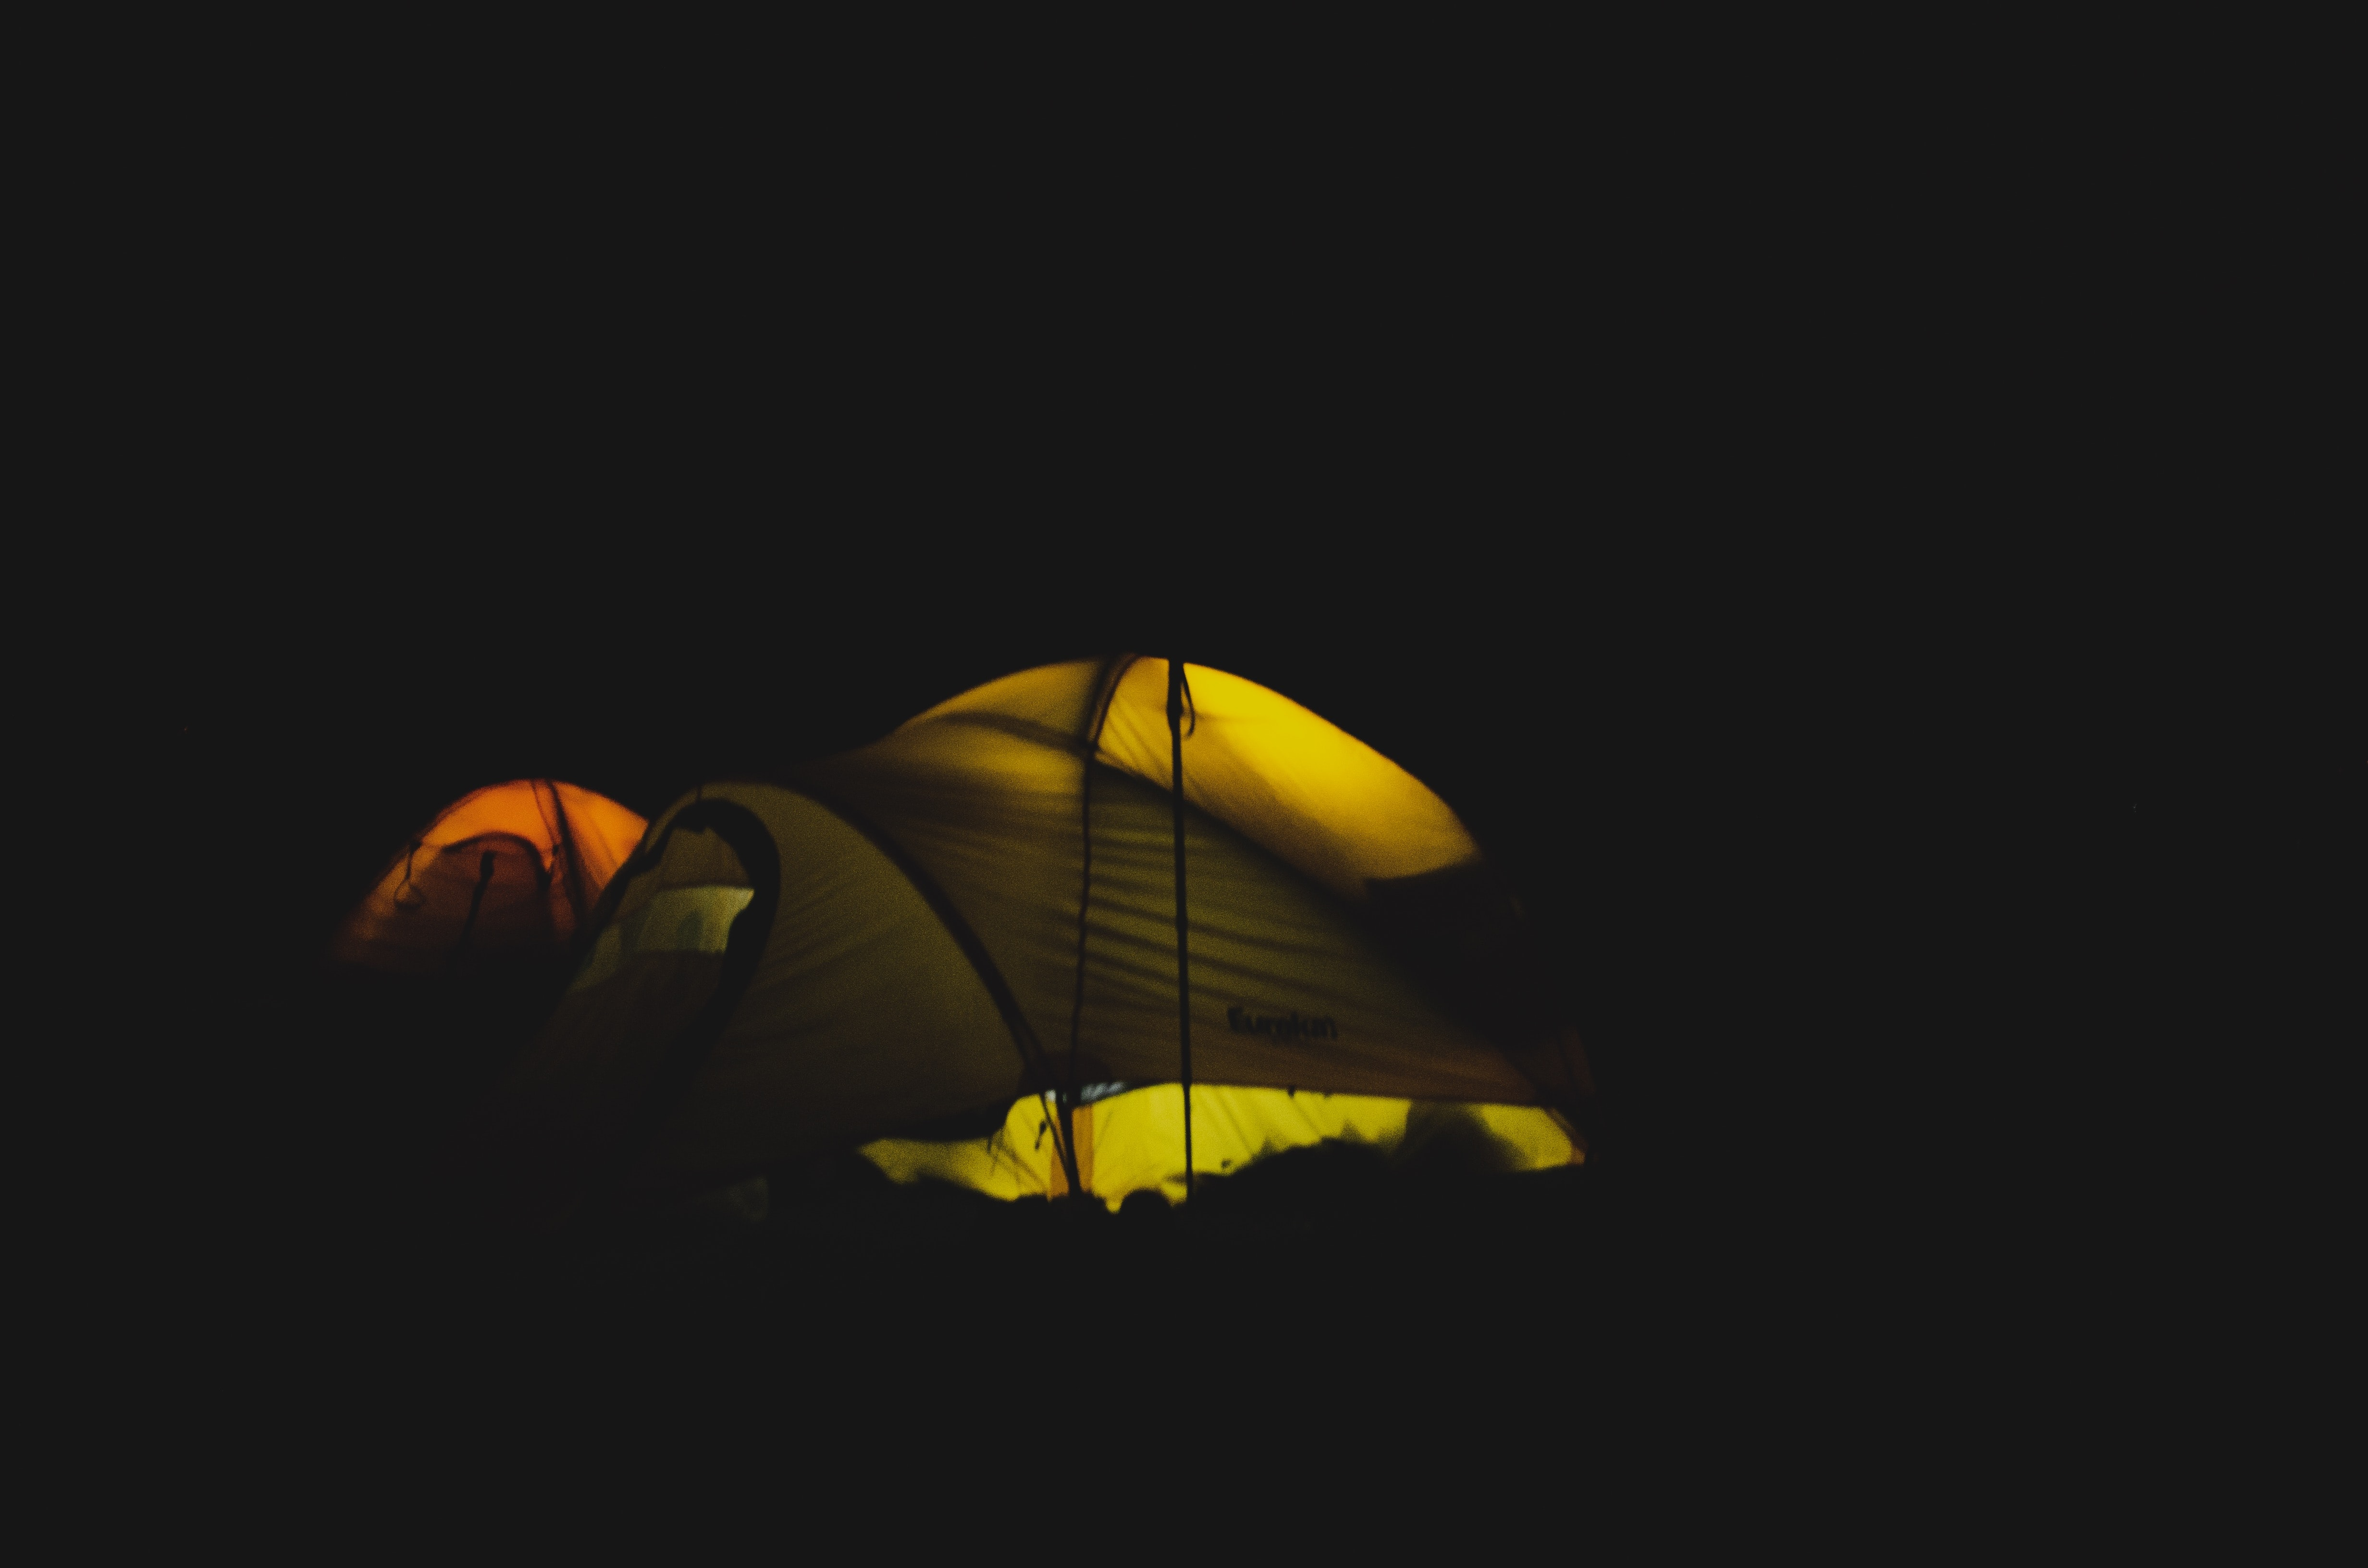 yellow and red dome tent with light at nighttime